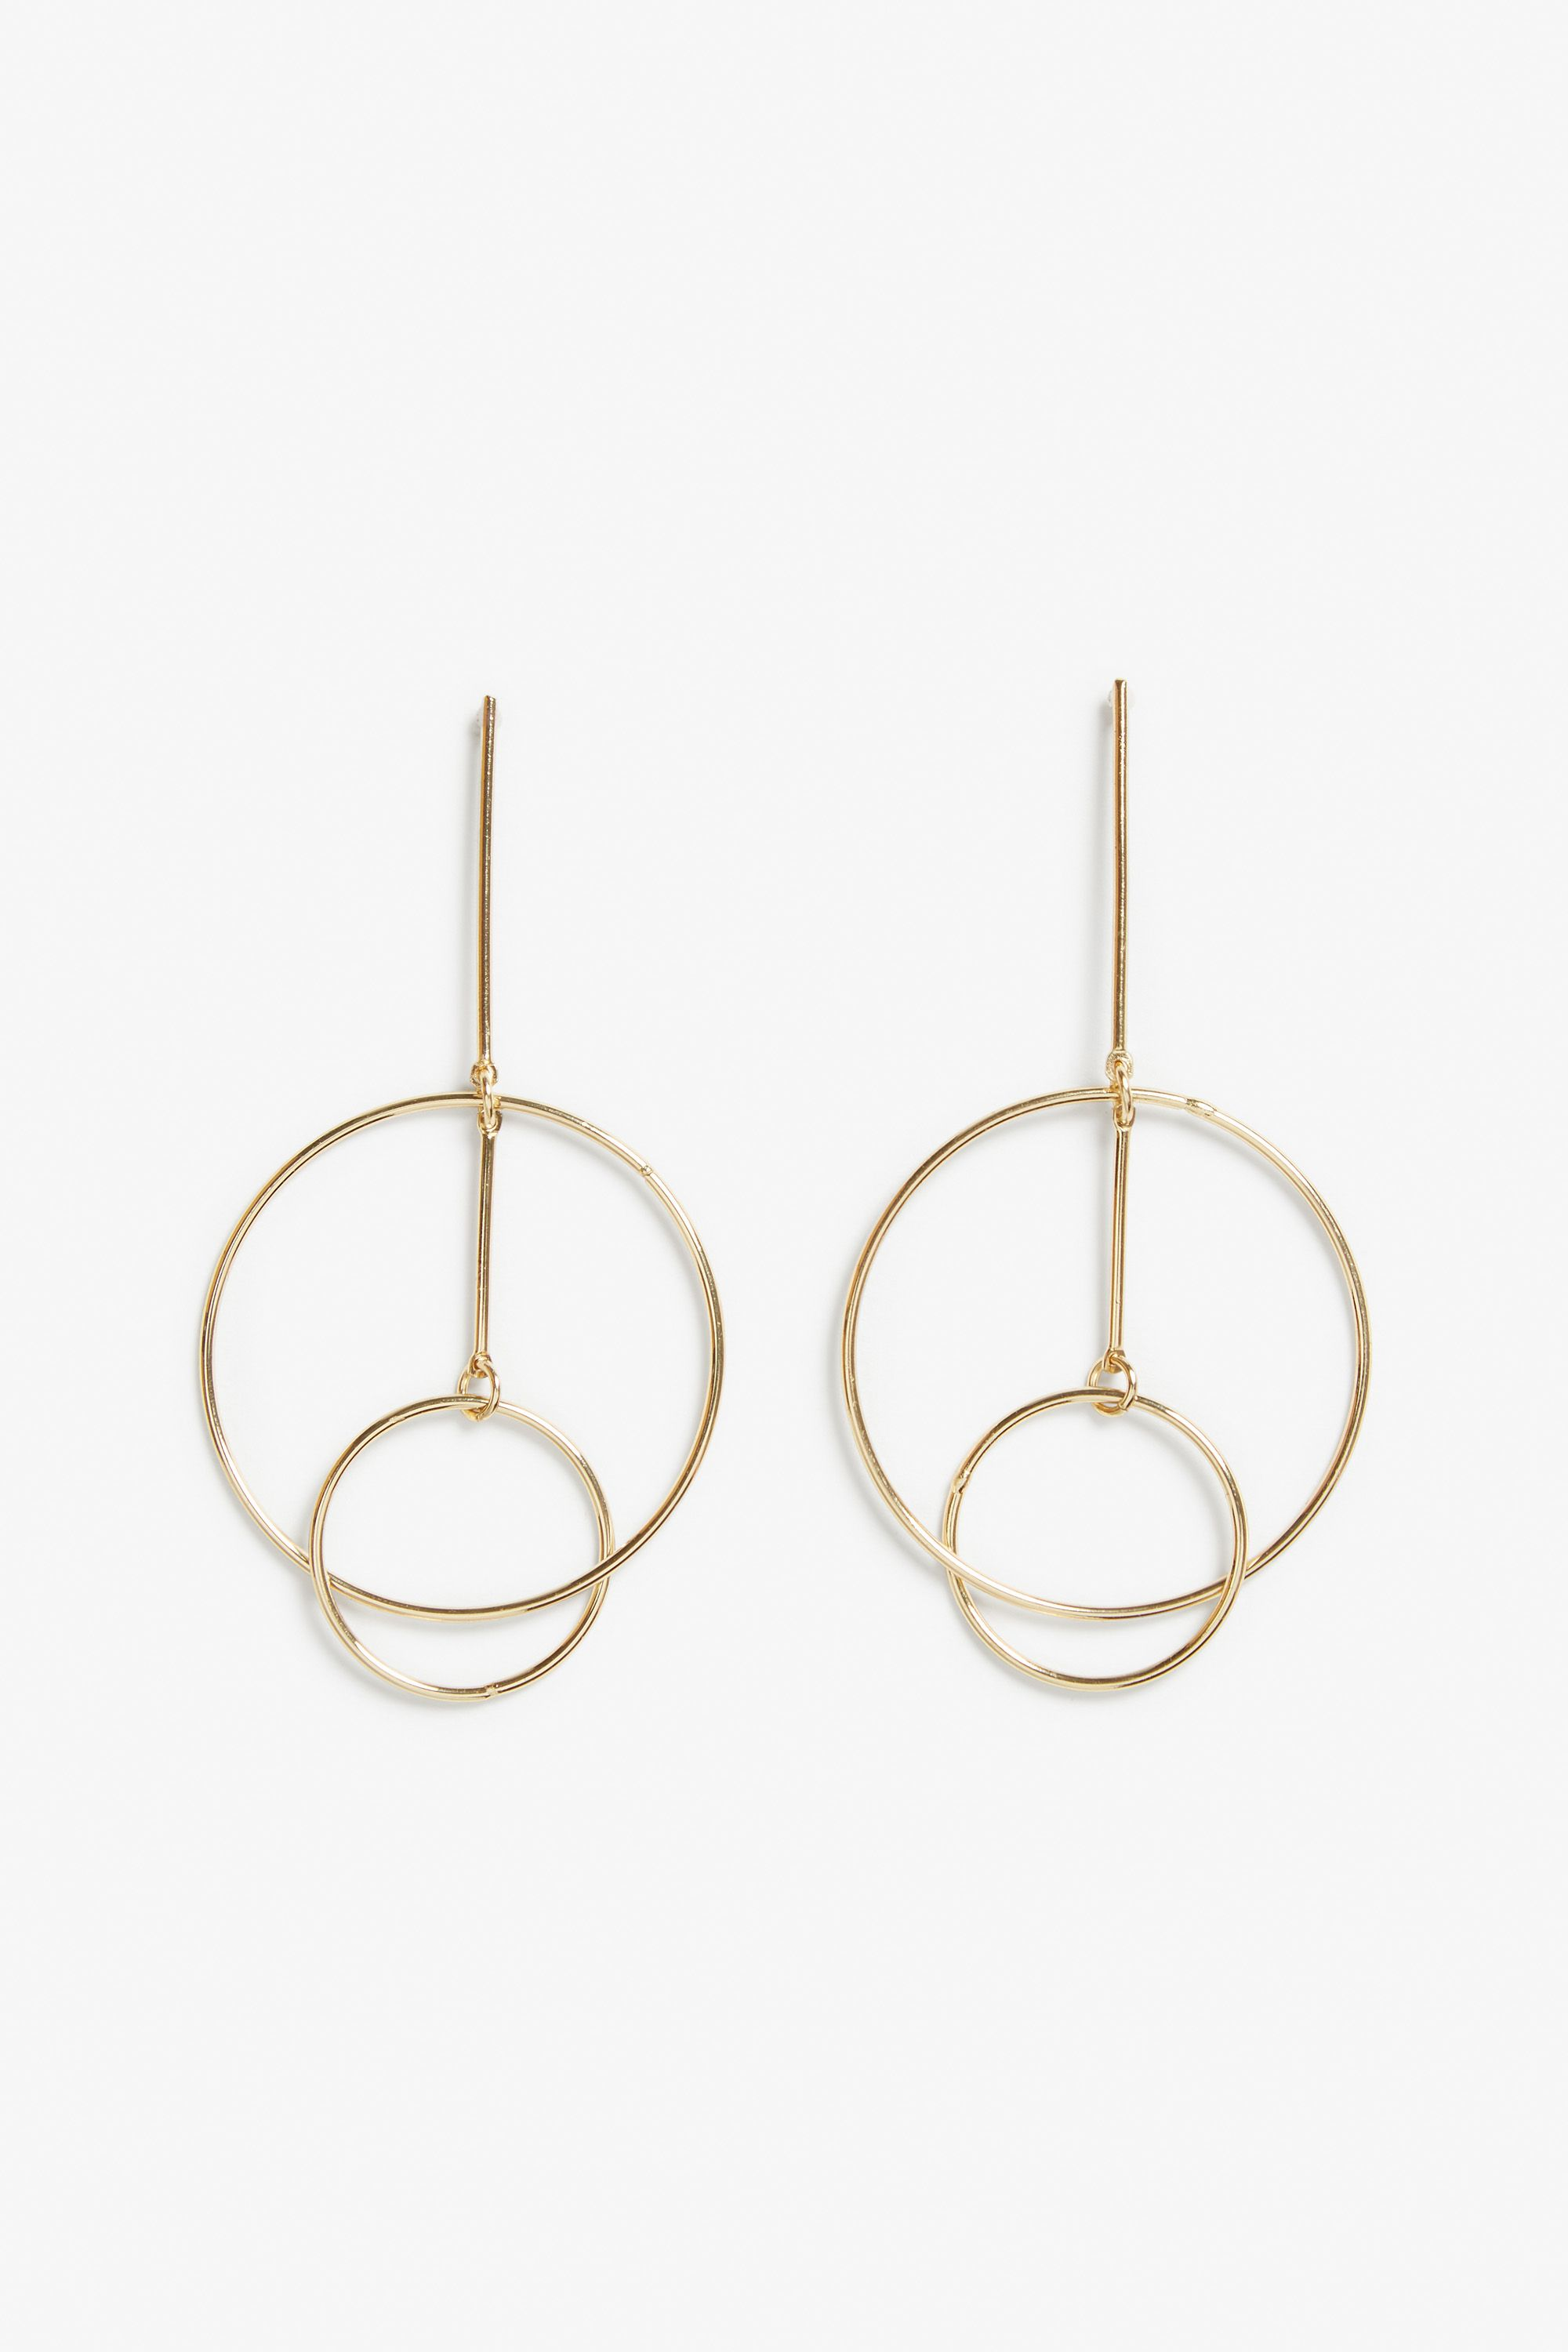 gallery lyst earrings gold designer in metallic missguided circle double jewelry